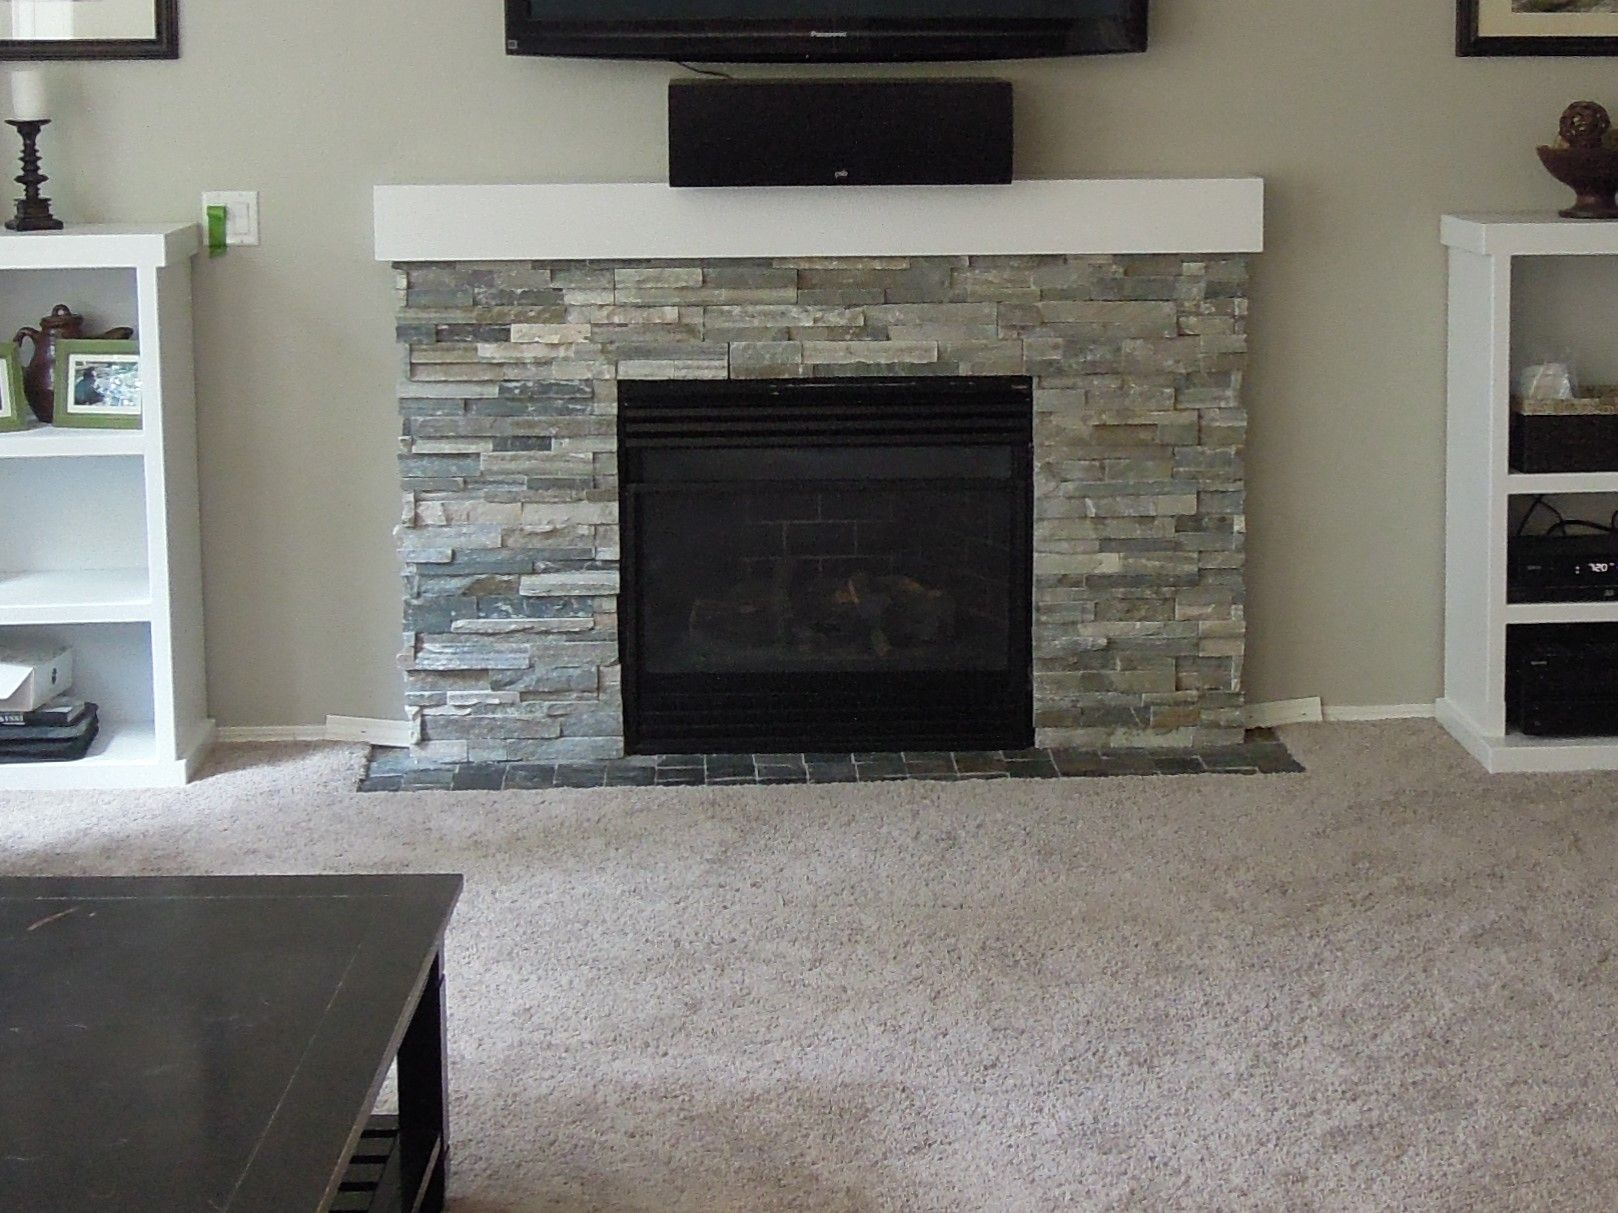 Roman Beige Ledger Stone Accent Wall And Fireplace Surround. Brown  Travertine Ledger Stone, Stone Genial Kamin ... Steinplatte Kamin Surround  California ...